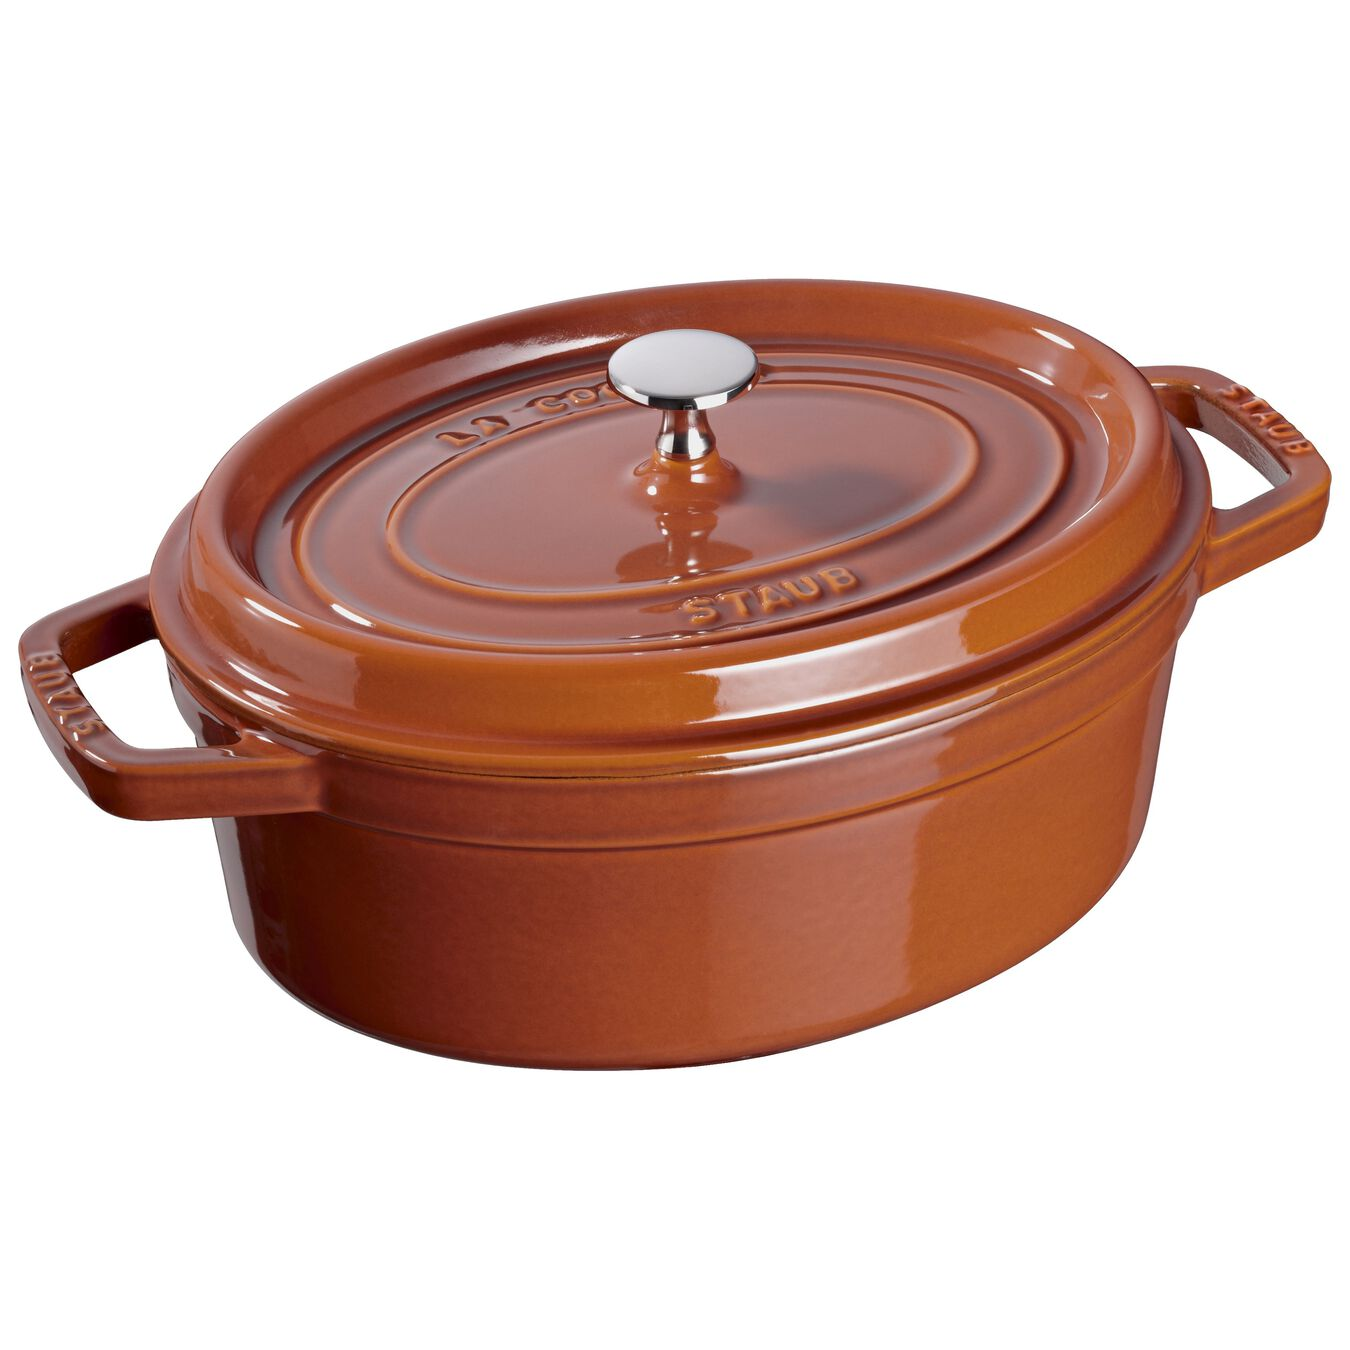 Cocotte ovale - 29 cm, cannella,,large 1